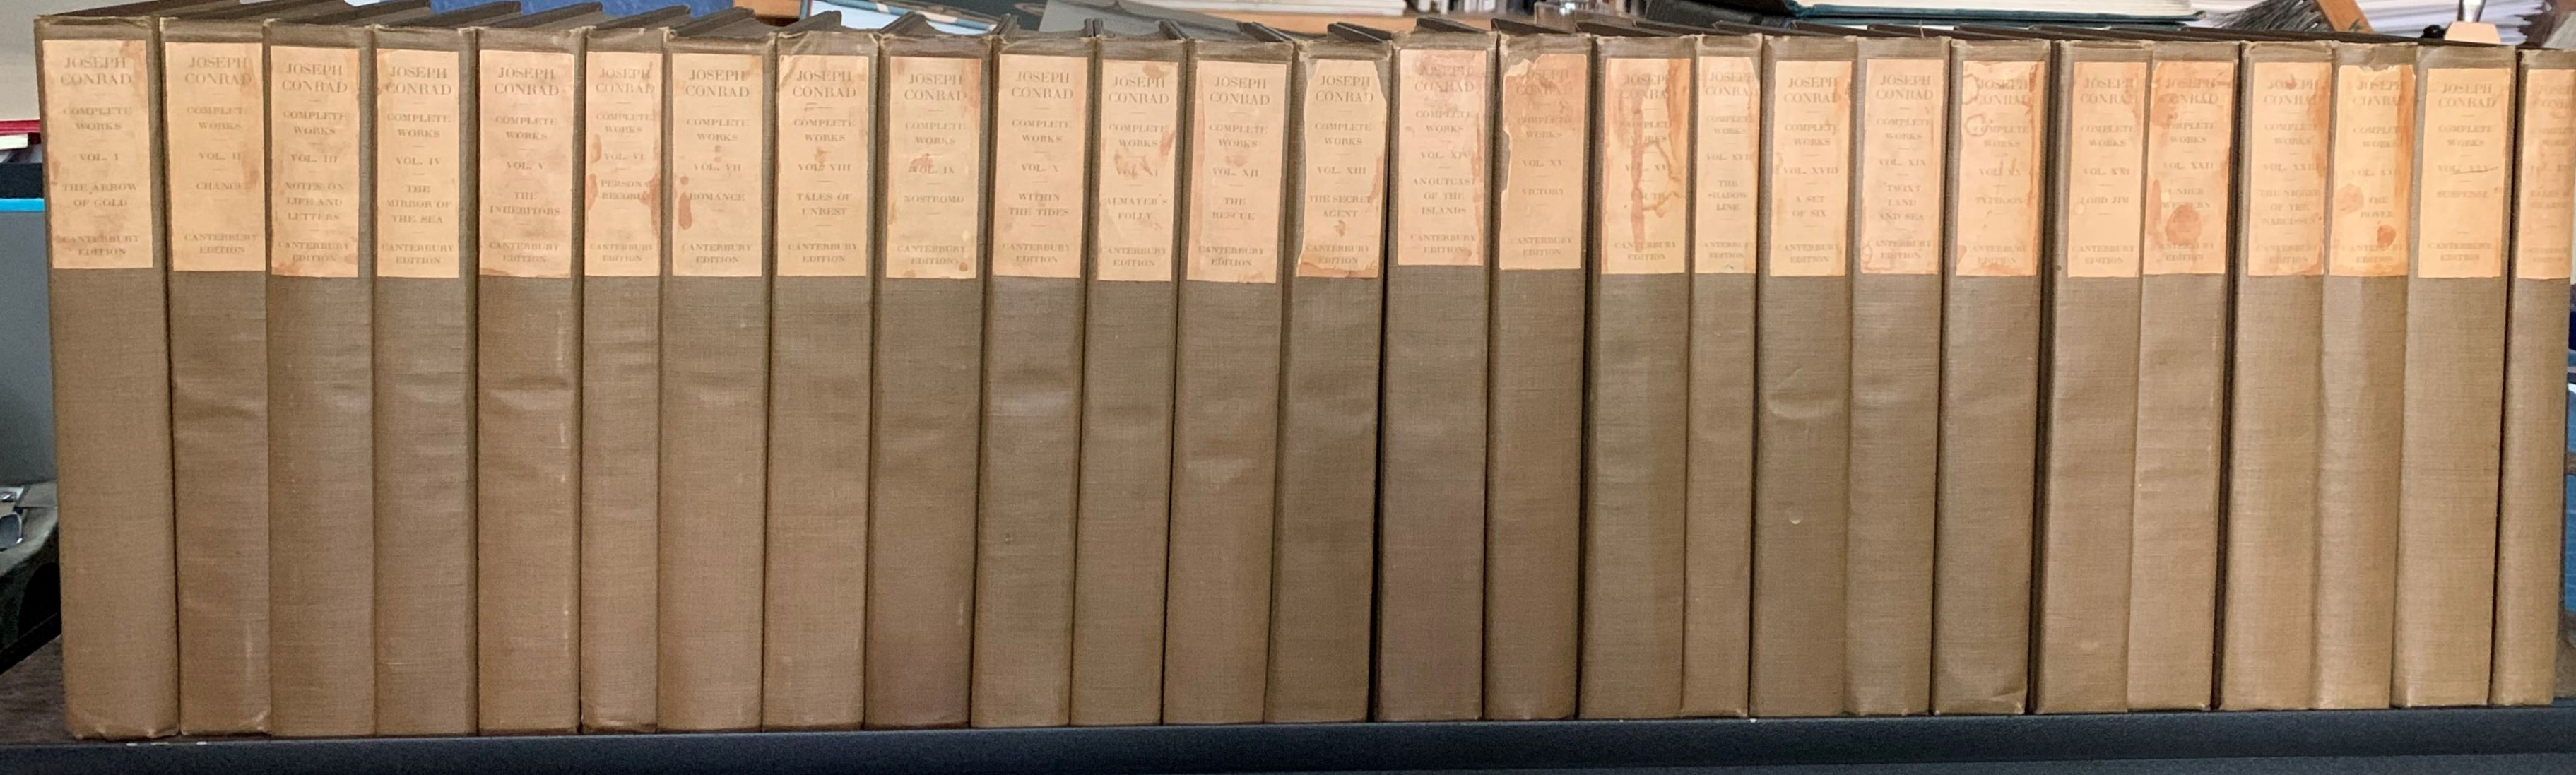 Image for Joseph Conrad, Complete Works (Spine Title, Complete in 26 Volumes).